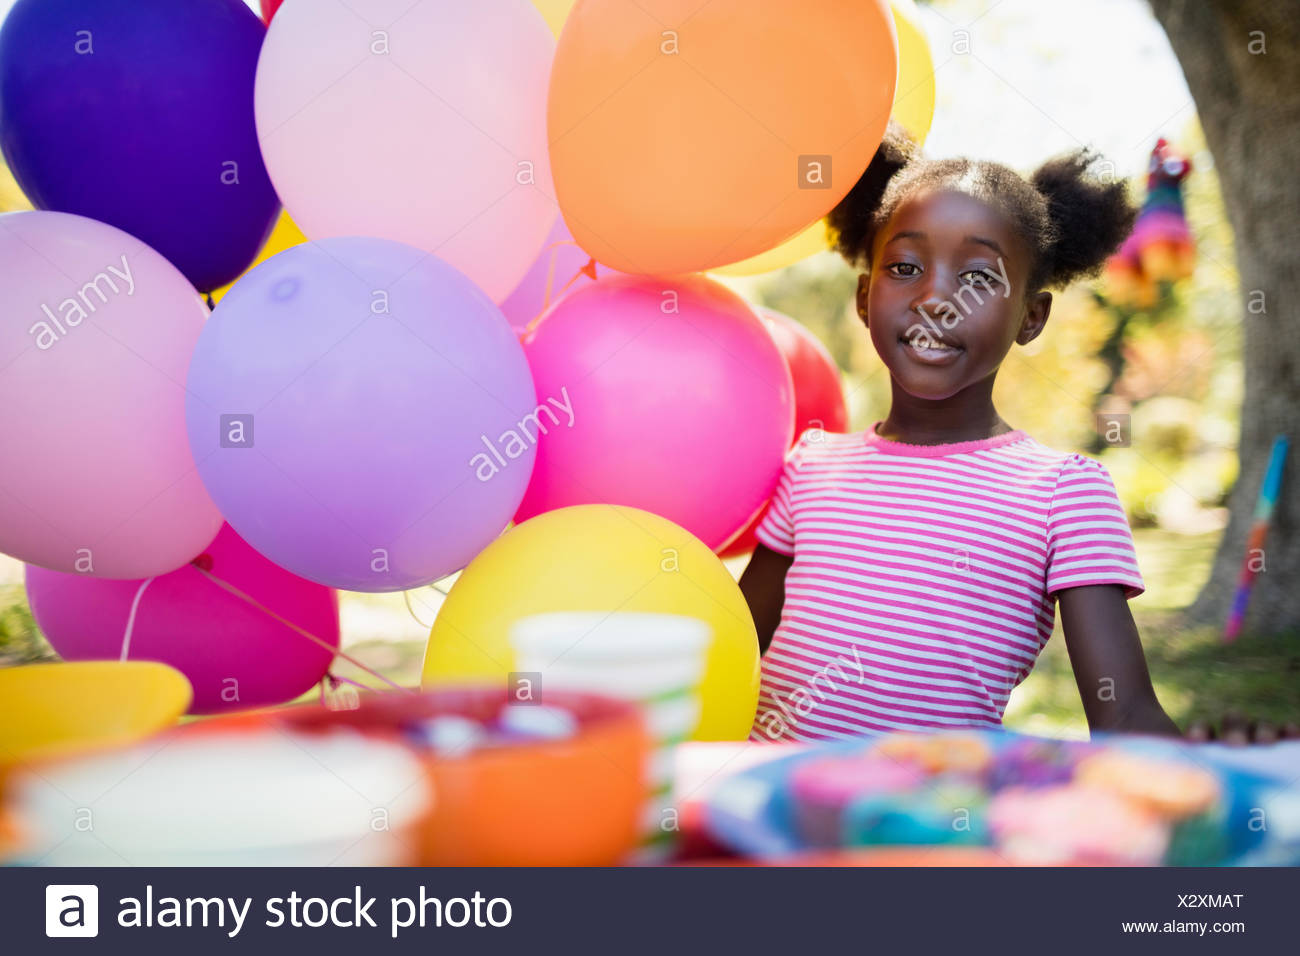 Cute girl posing next to balloon on a birthday party - Stock Image